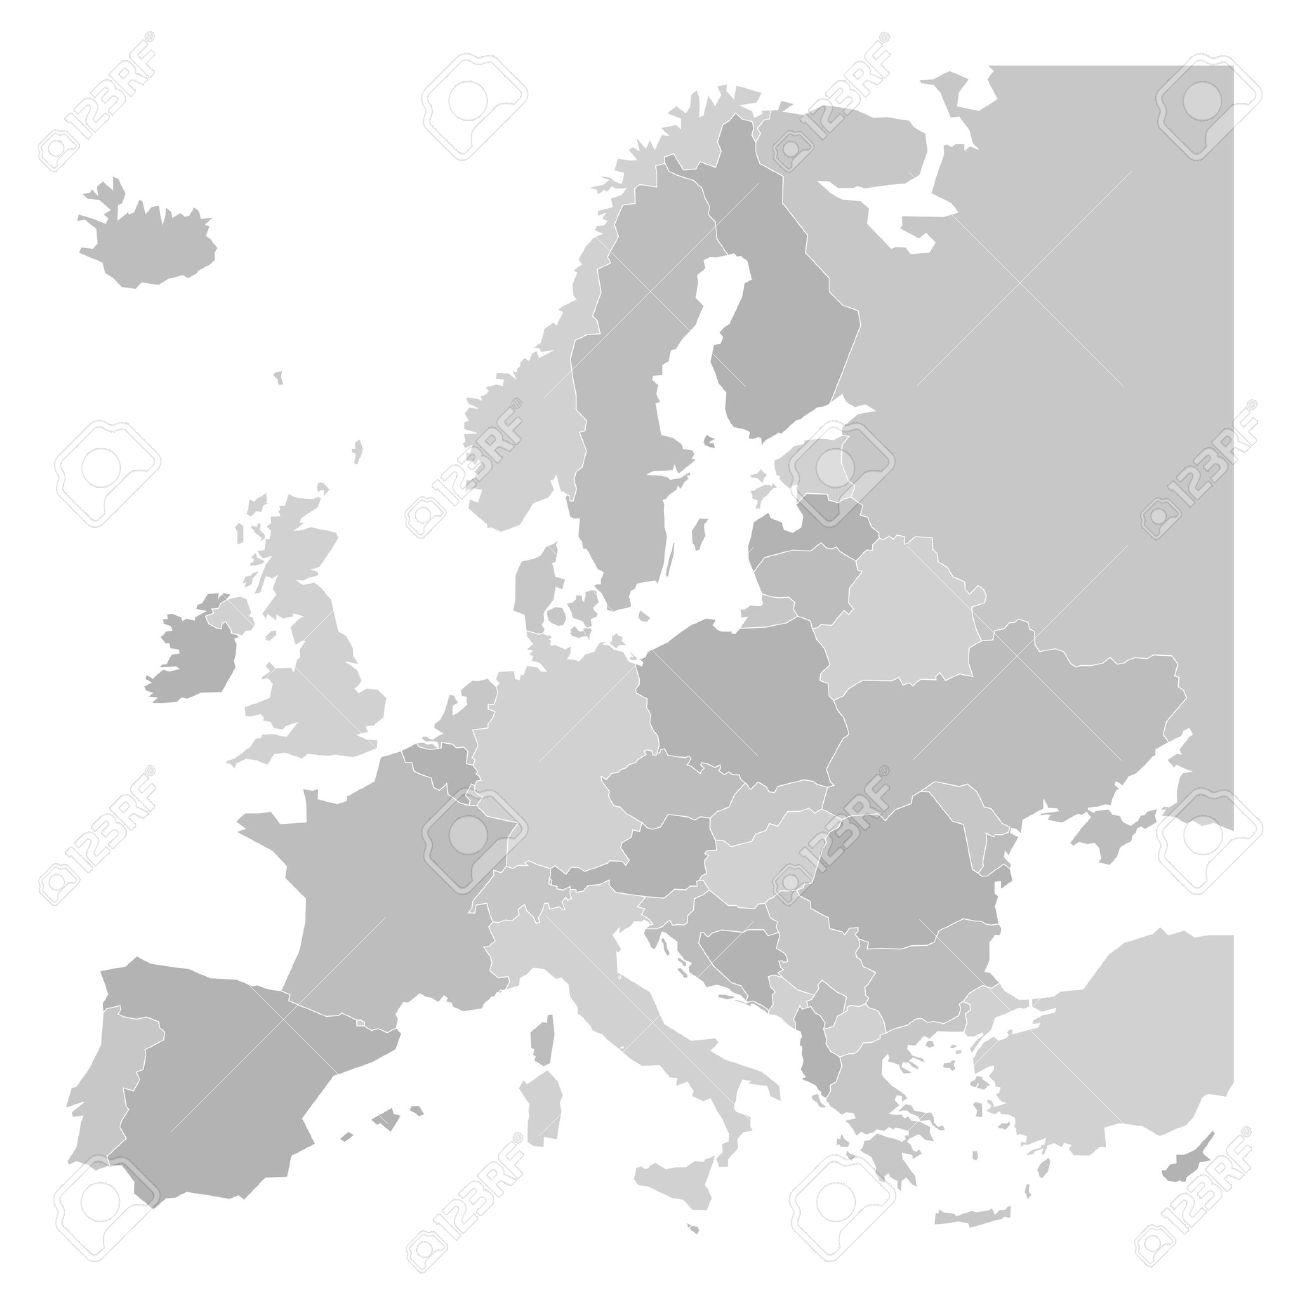 White Map Of Europe.Blank Map Of Europe Vector Illustration In Grey Shades On White